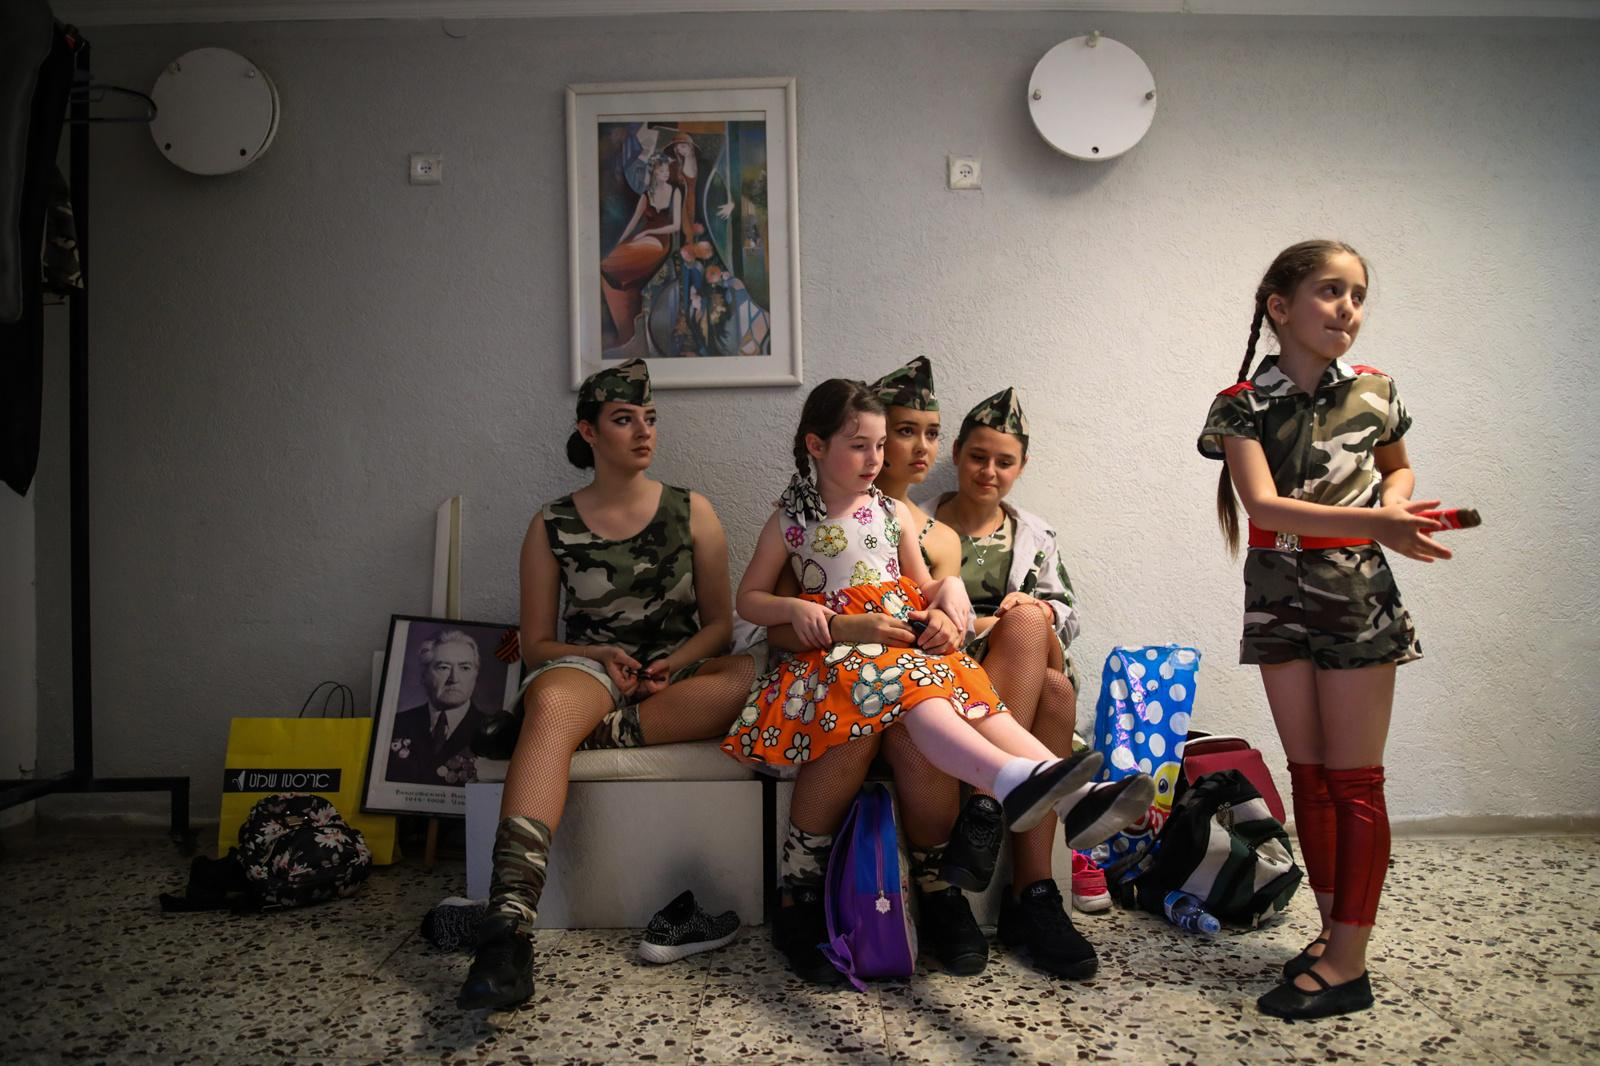 Young women prepare backstage for a performance during an event in remembrance of Victory Day, marking the anniversary of the Allied victory over Nazi Germany, in the southern city of Ashdod, Israel May 9, 2017.